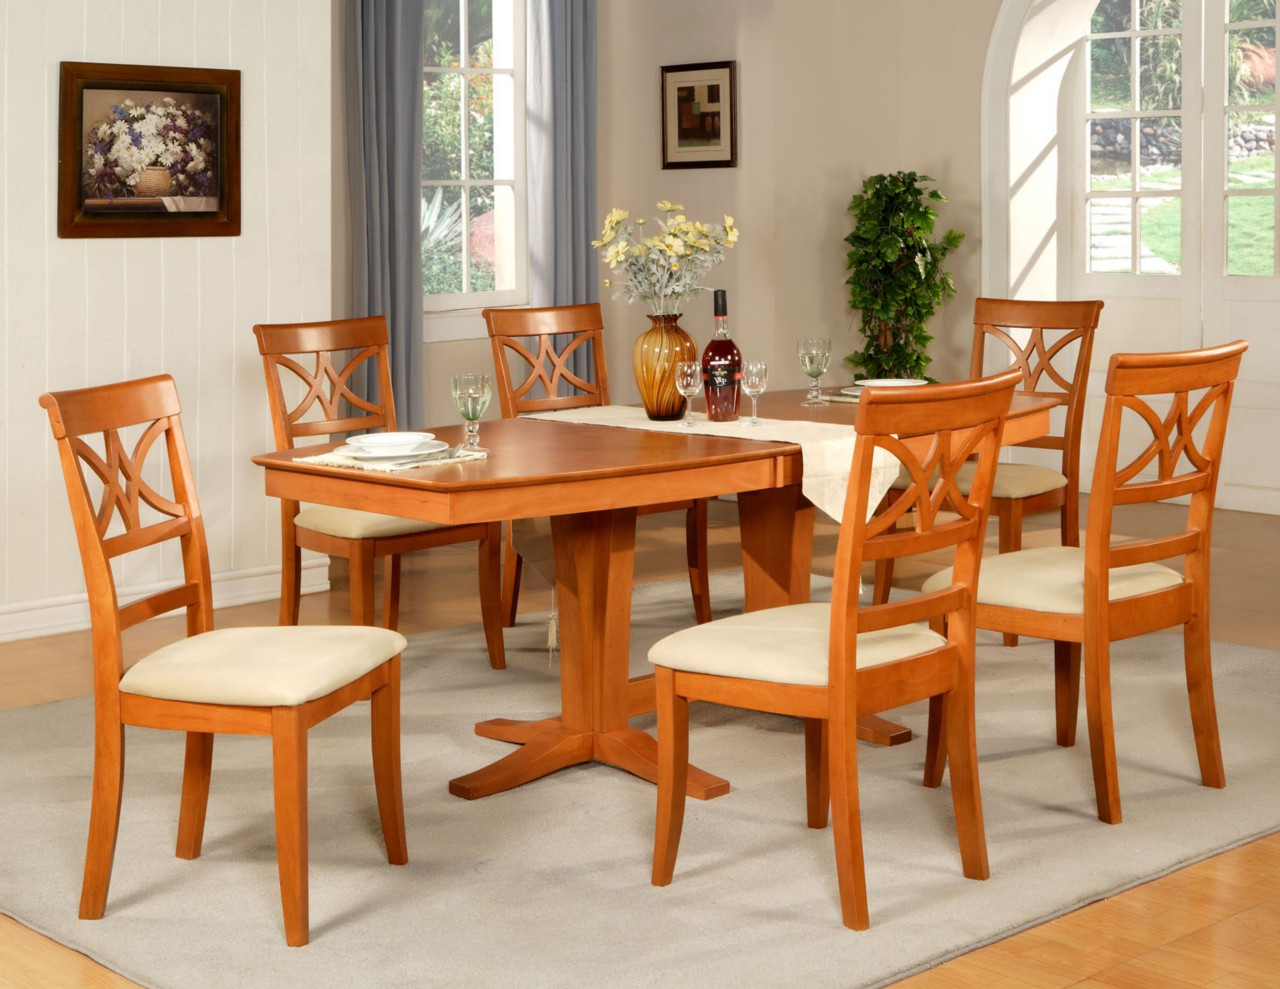 OCTAGONAL SHAPED DINETTE DINING ROOM TABLE WITHOUT CHAIR